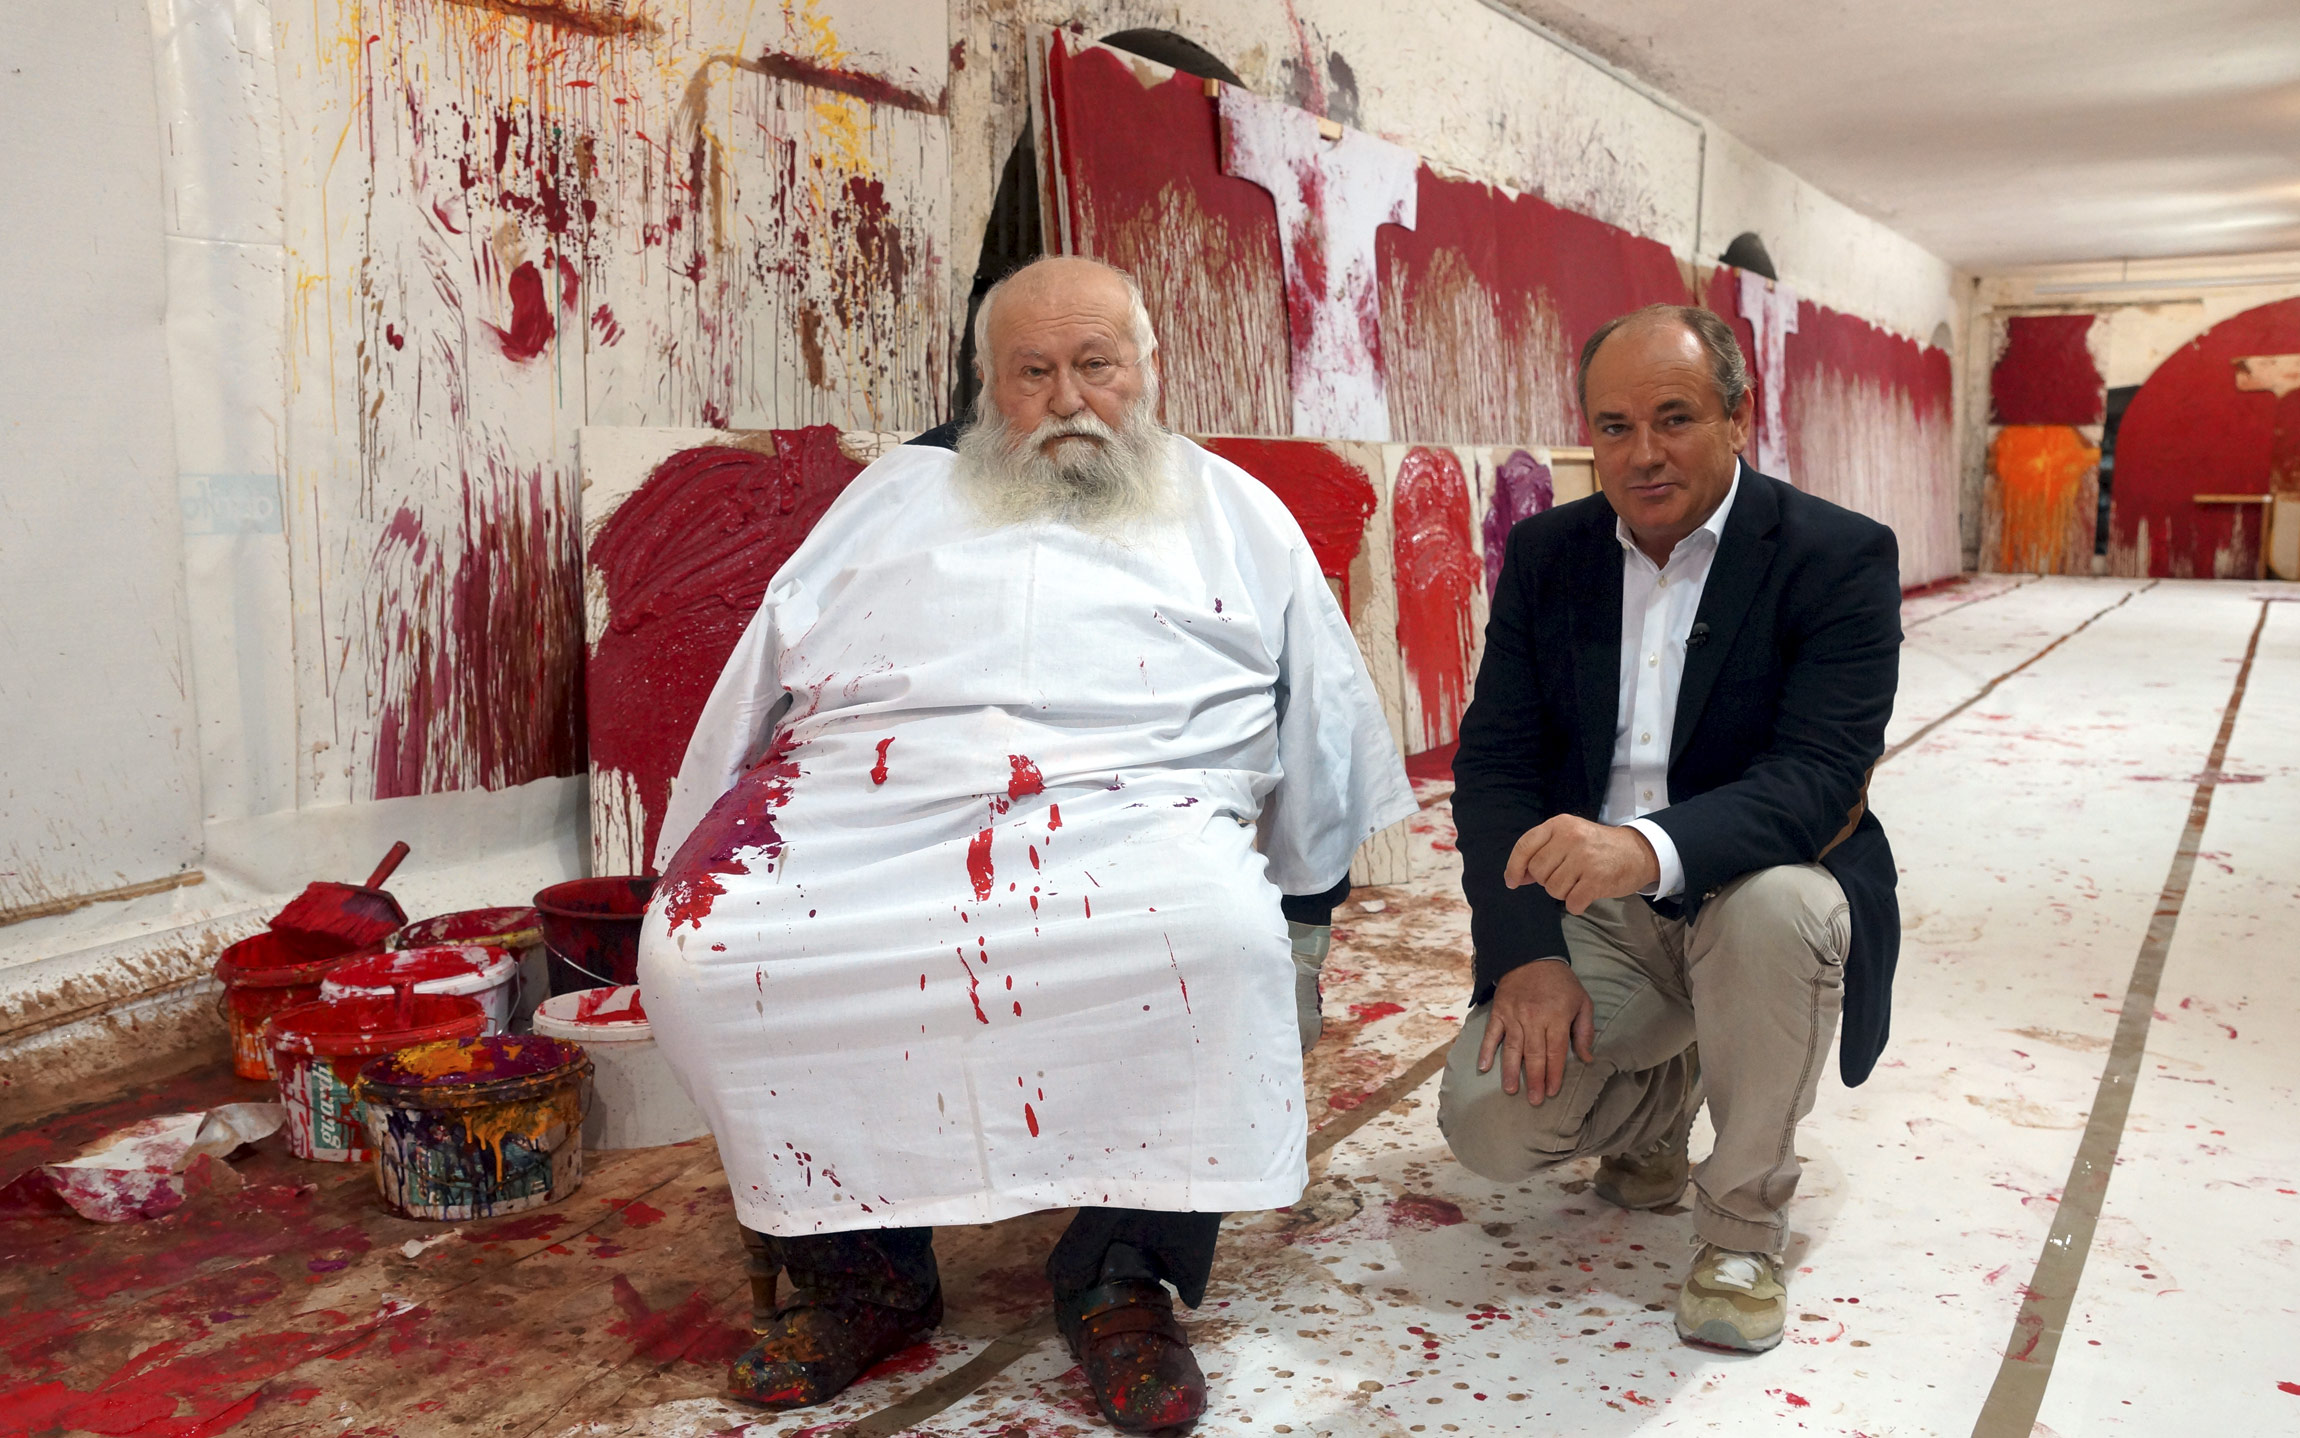 Hermann Nitsch KS